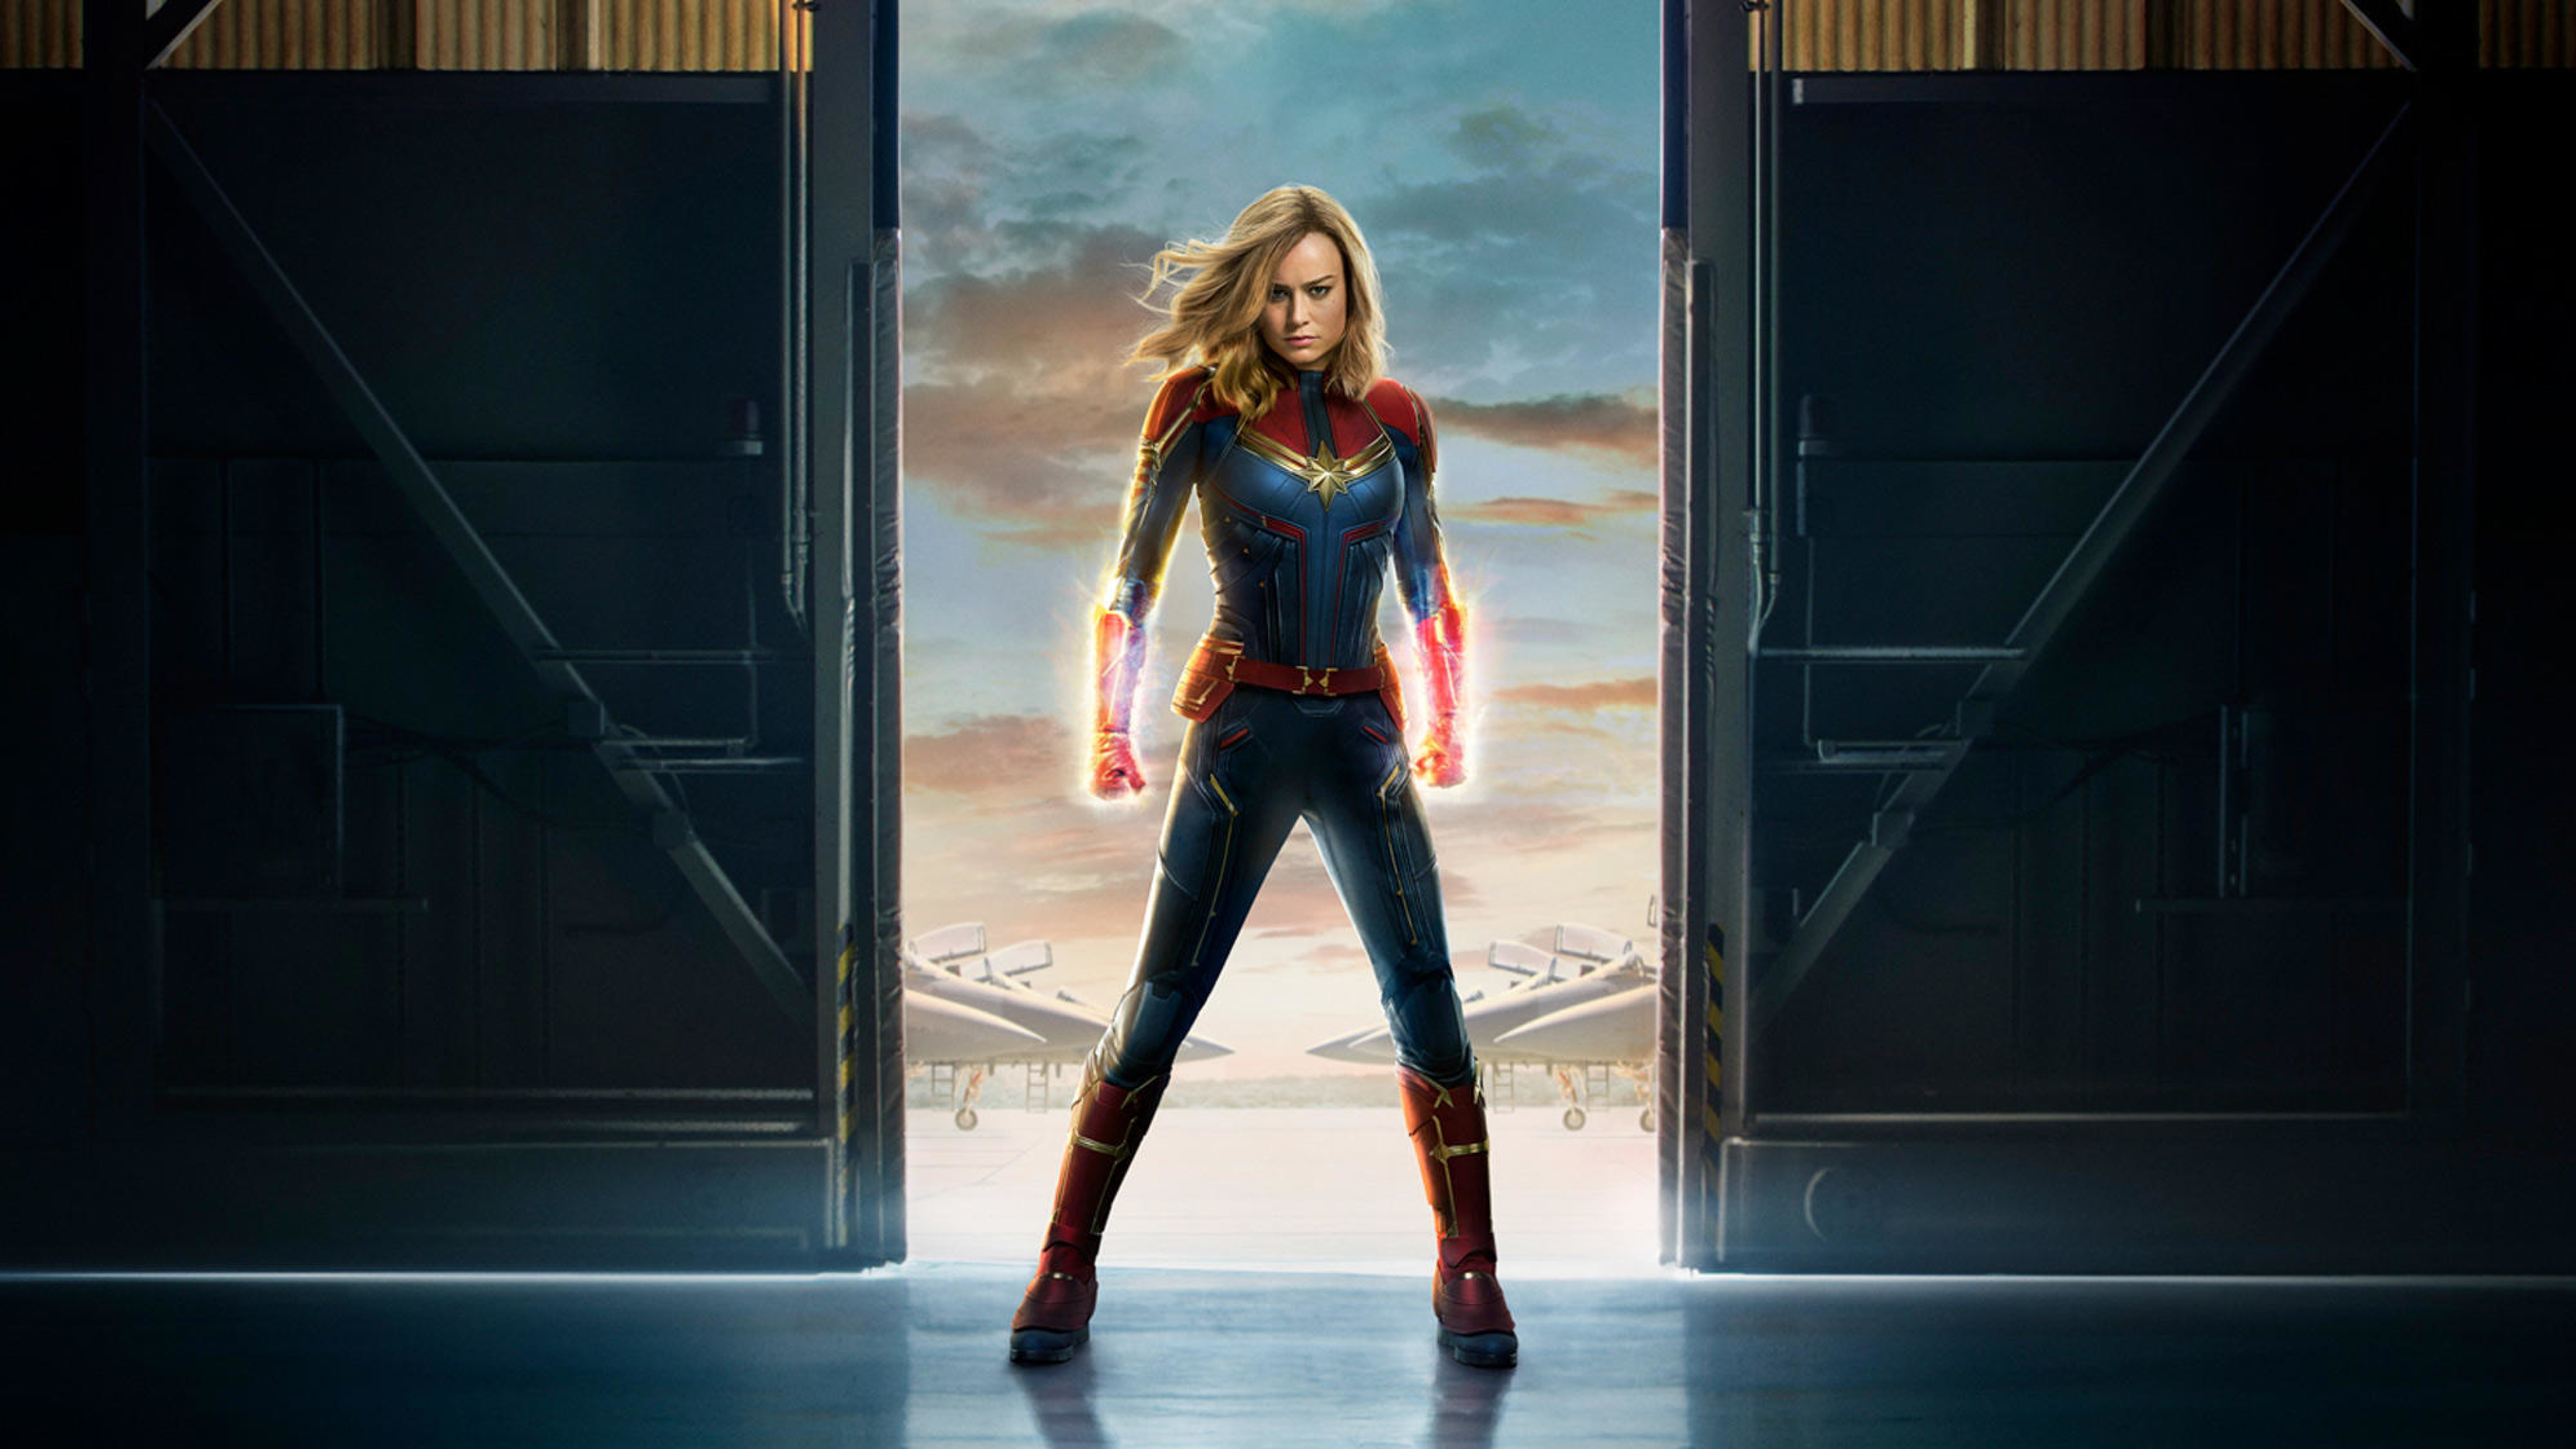 3840x2160 Captain Marvel 2019 Movie Official Poster 4k